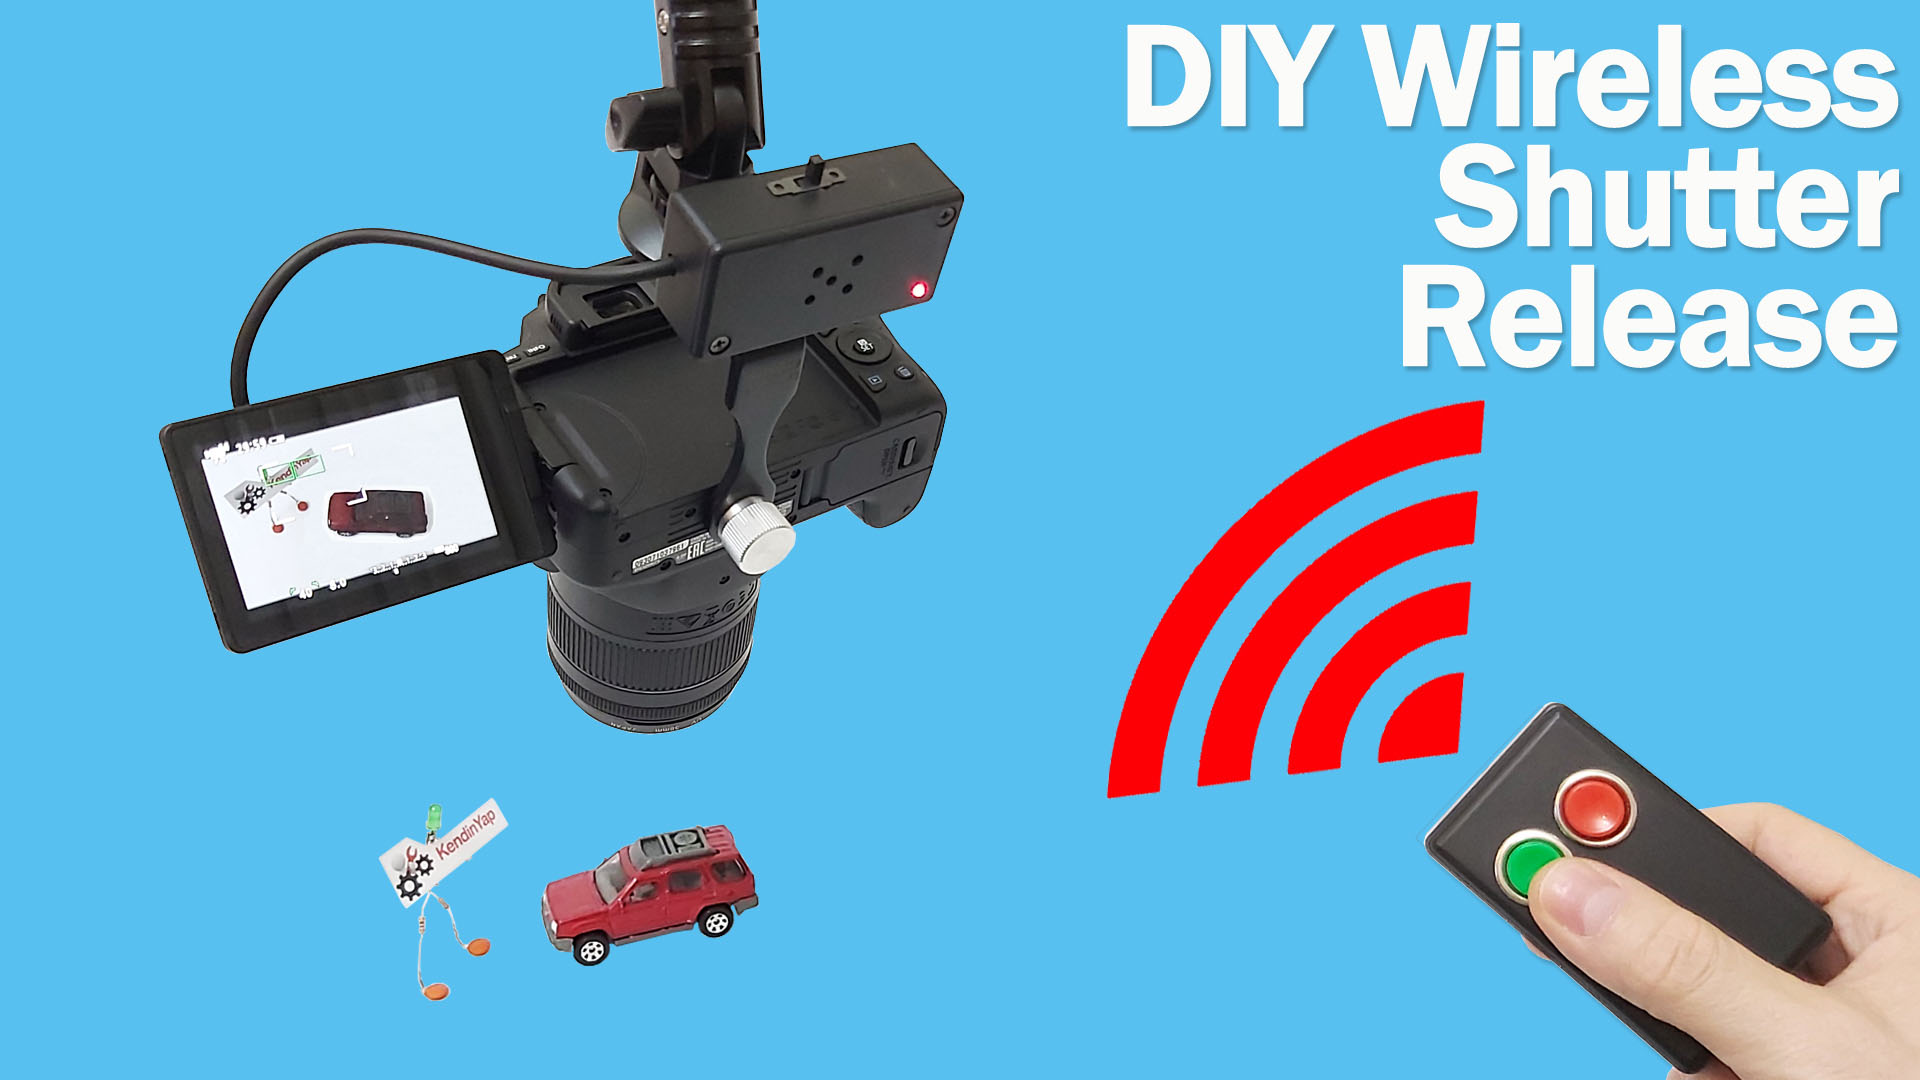 How To Make Wireless Shutter Release For SLR | DIY Wireless Trigger